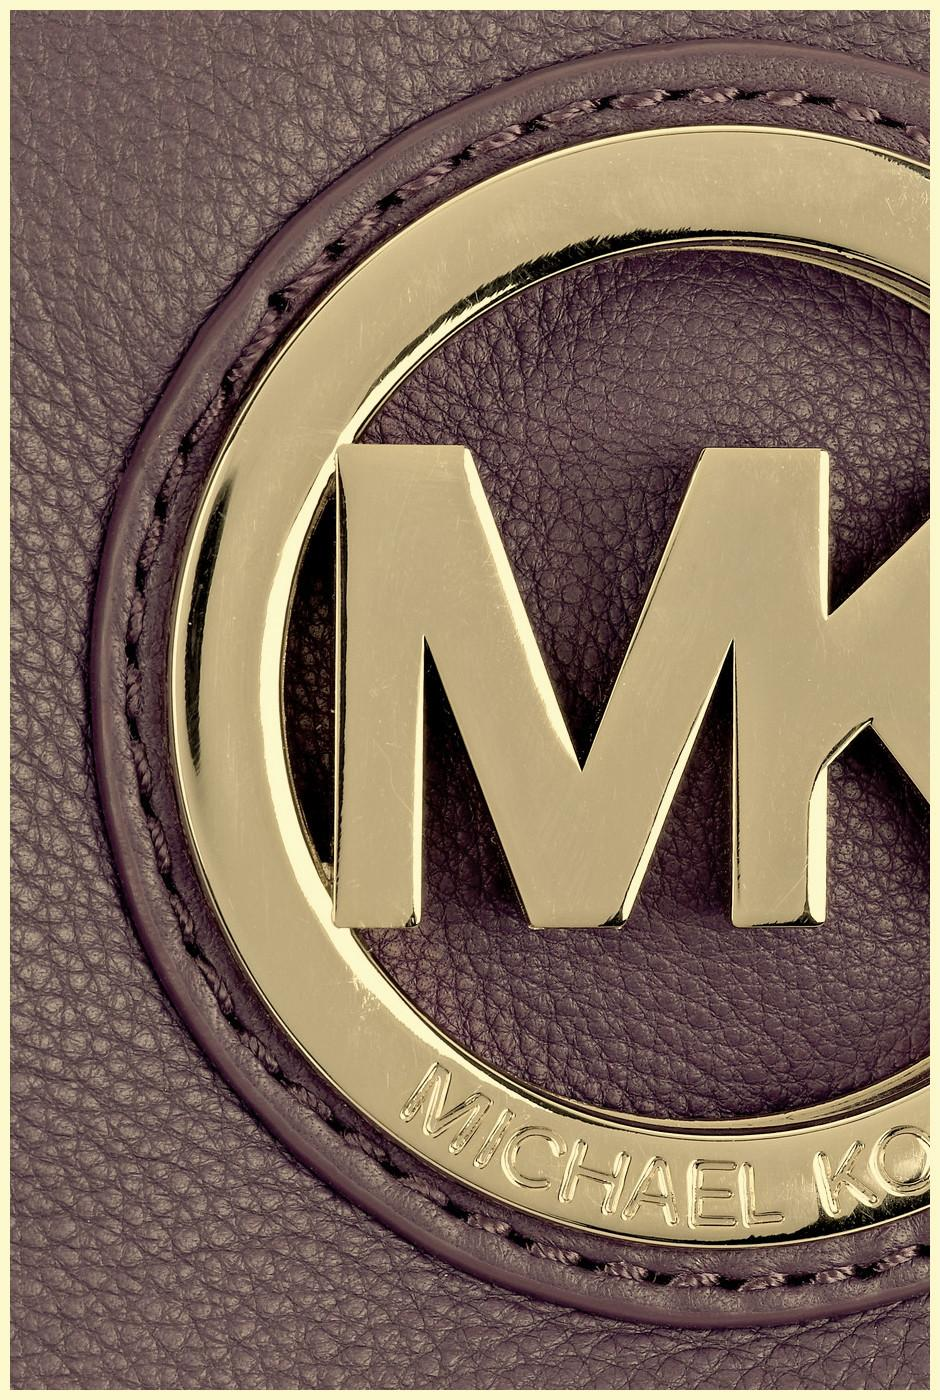 Michael Kors Iphone Wallpapers Wallpaper Cave